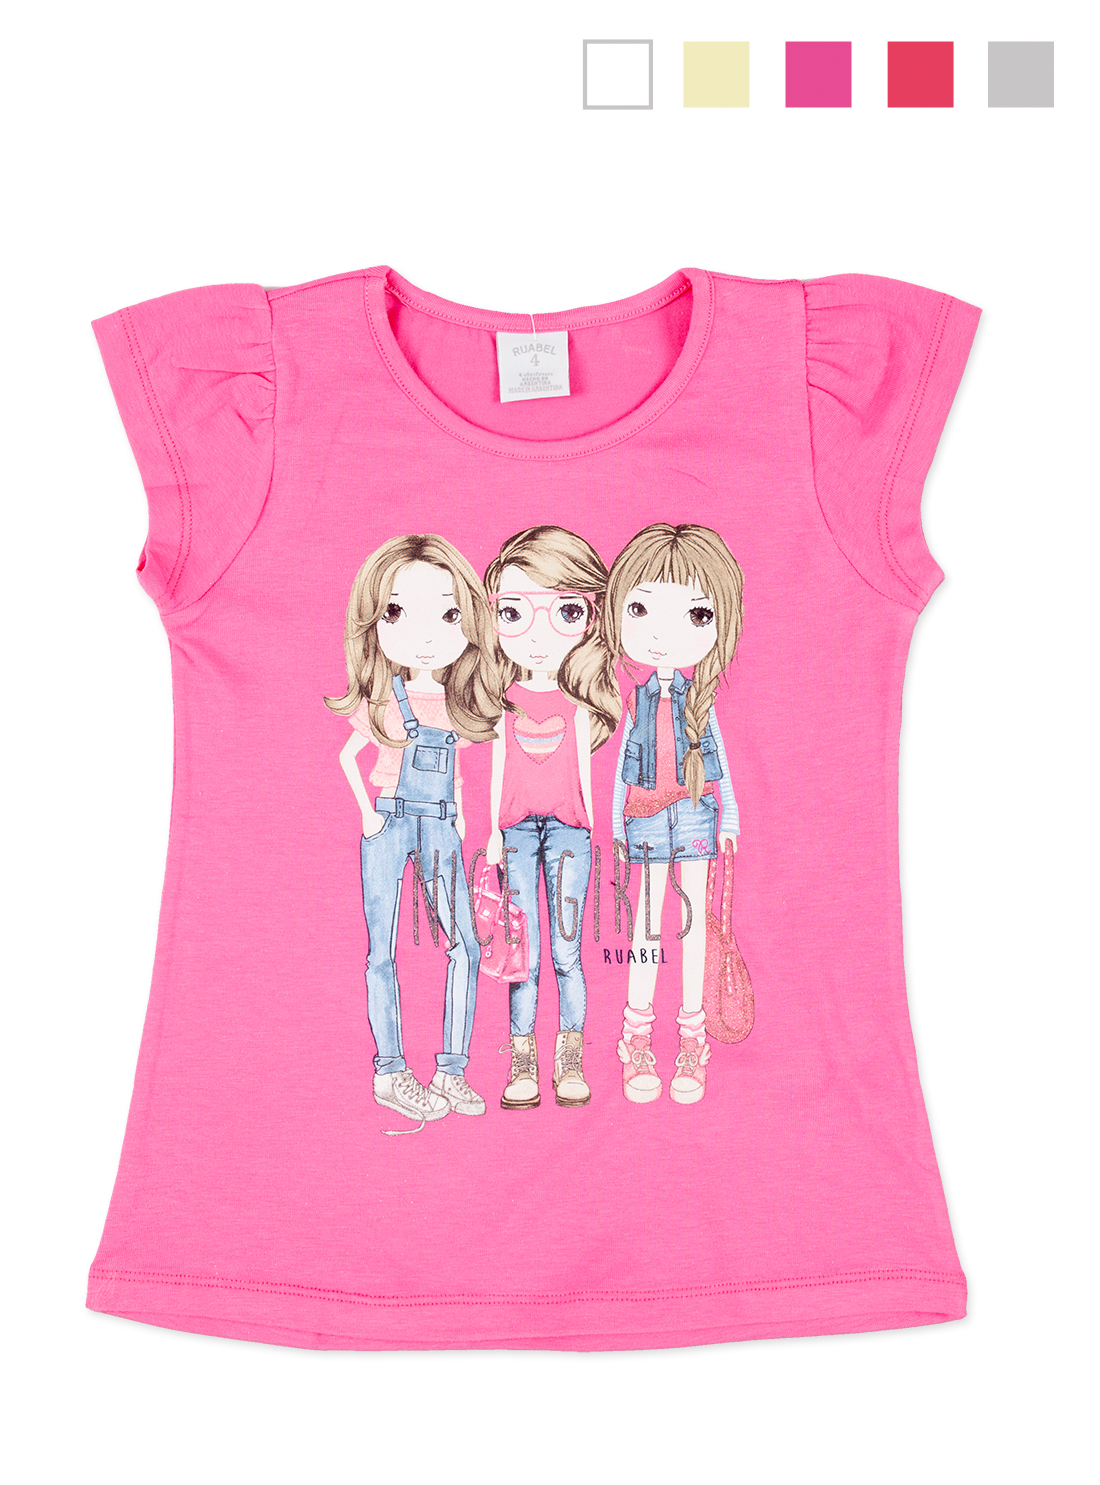 REMERA ART.509 T.4 NENA CON ESTAMPA AMIGAS FASHION Talles: 4